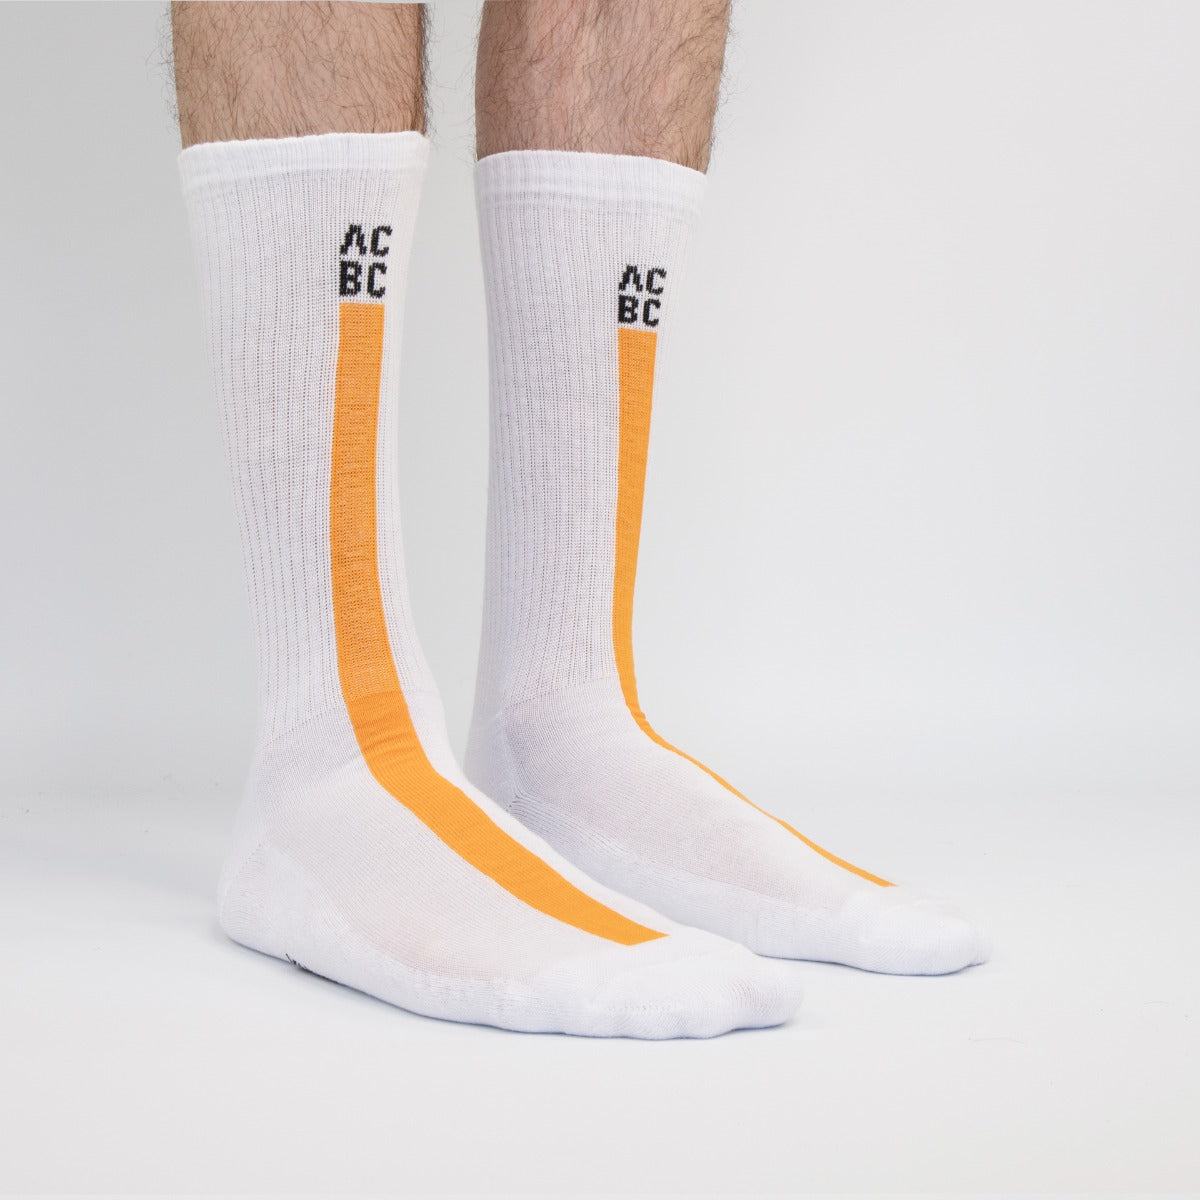 ACBC Socks Line White